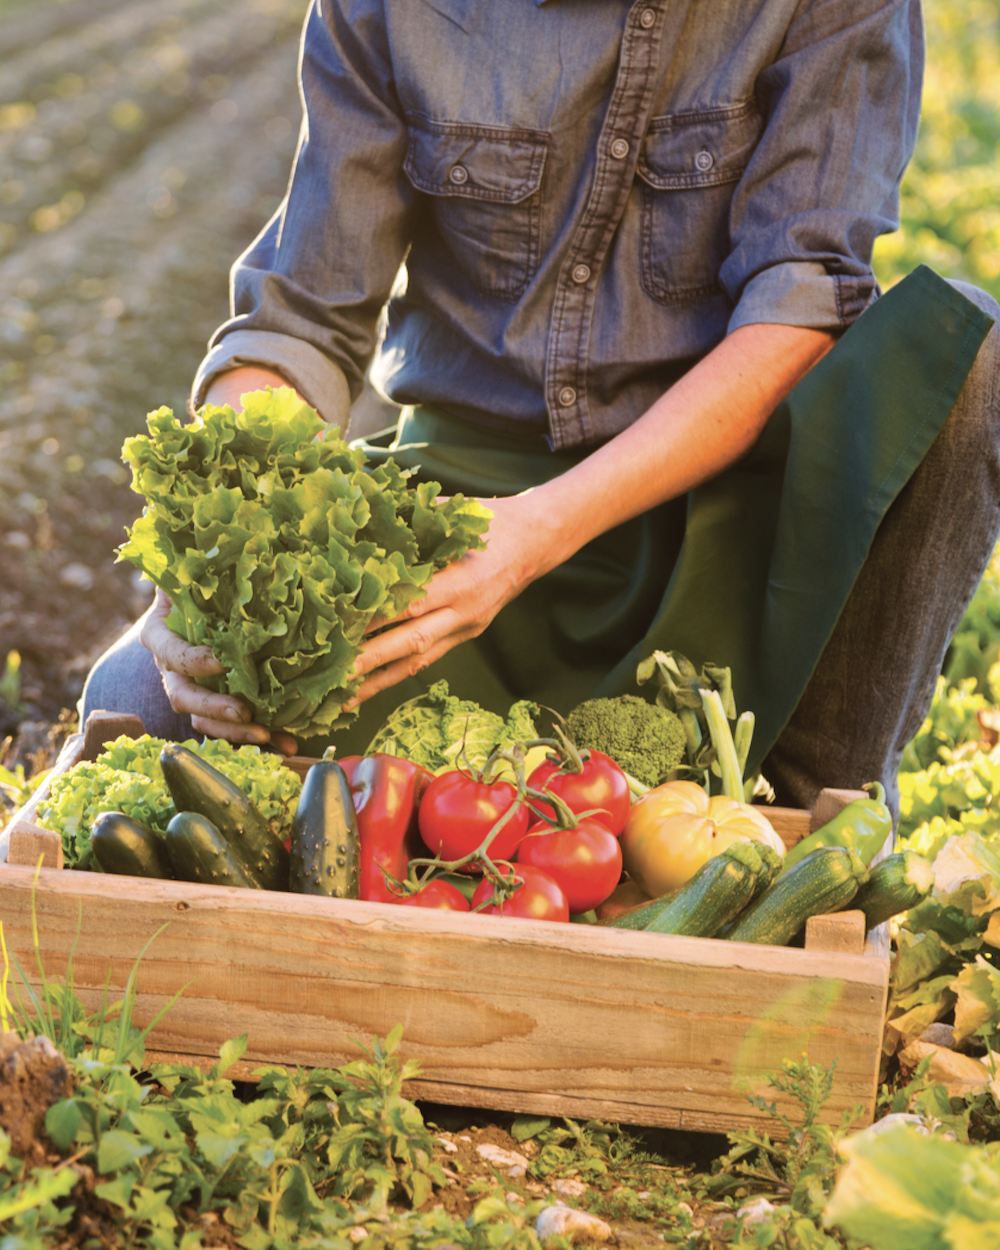 The Local Food Movement